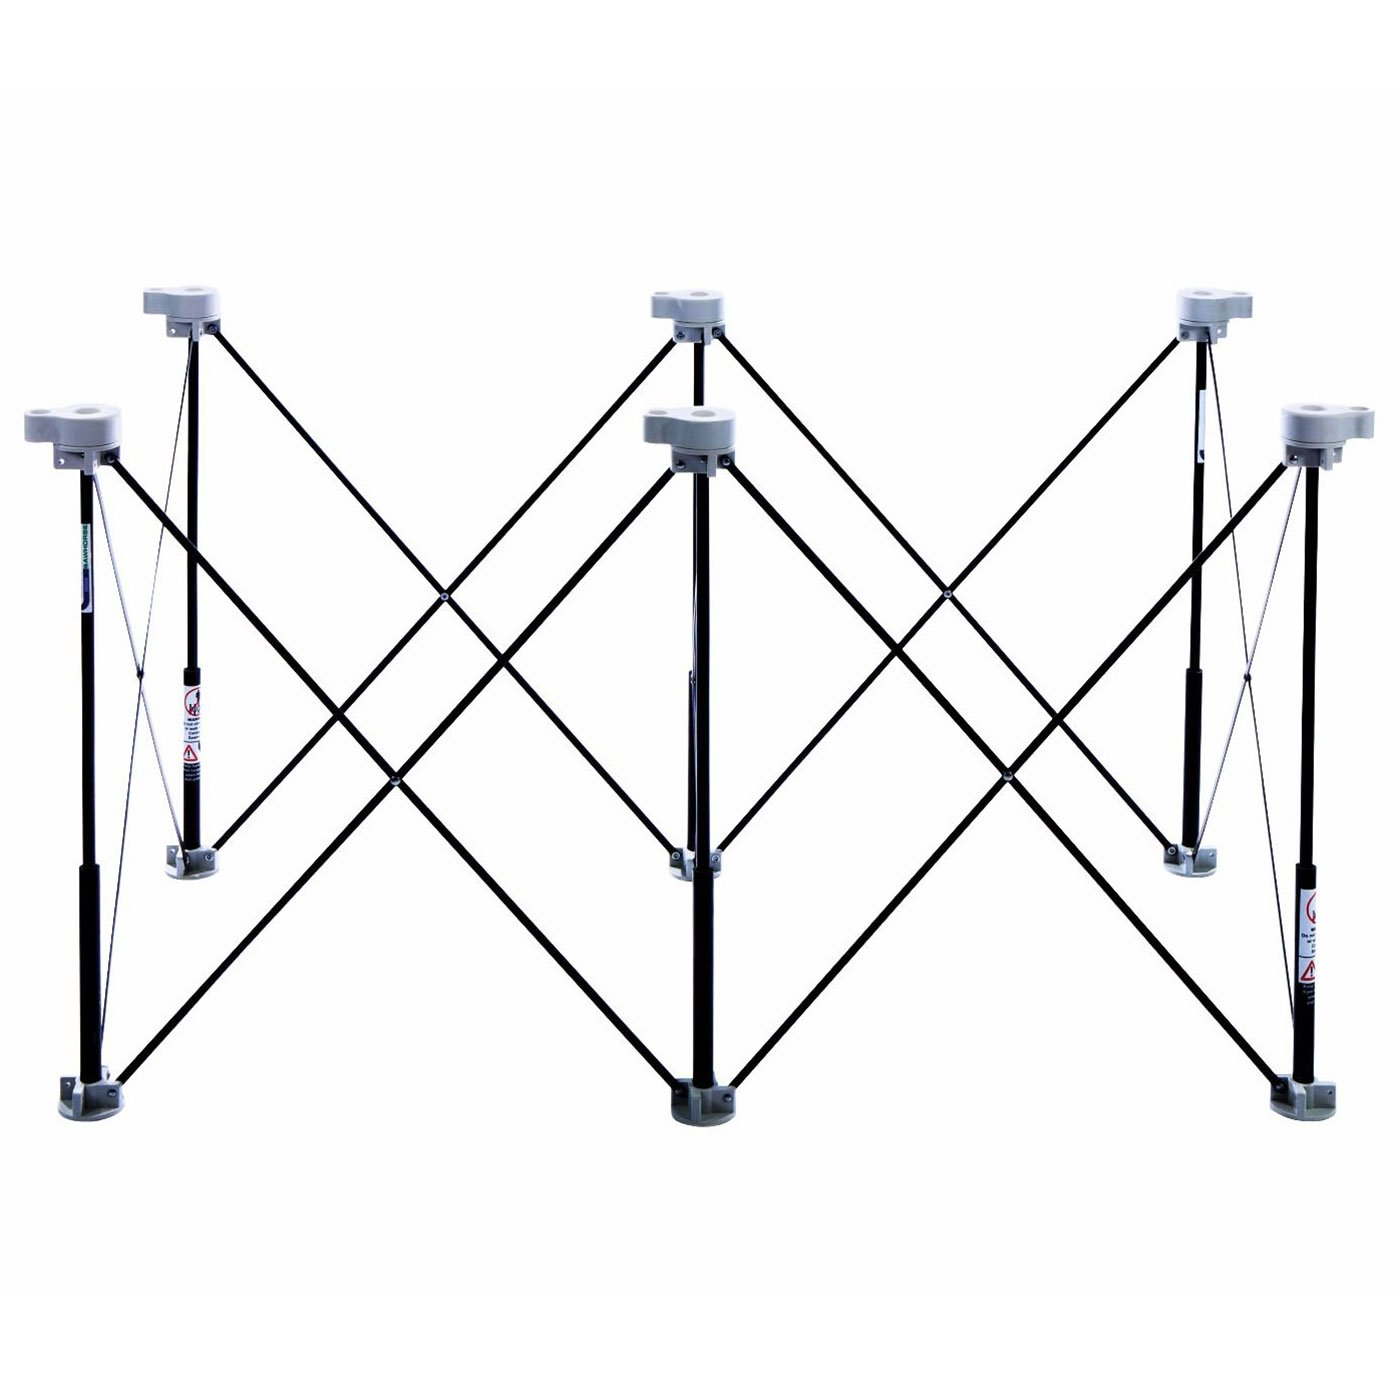 Centipede Tool K100 6 Strut Expandable 2 x 4 Foot Portable Sawhorse Work Support by Centipede Tool